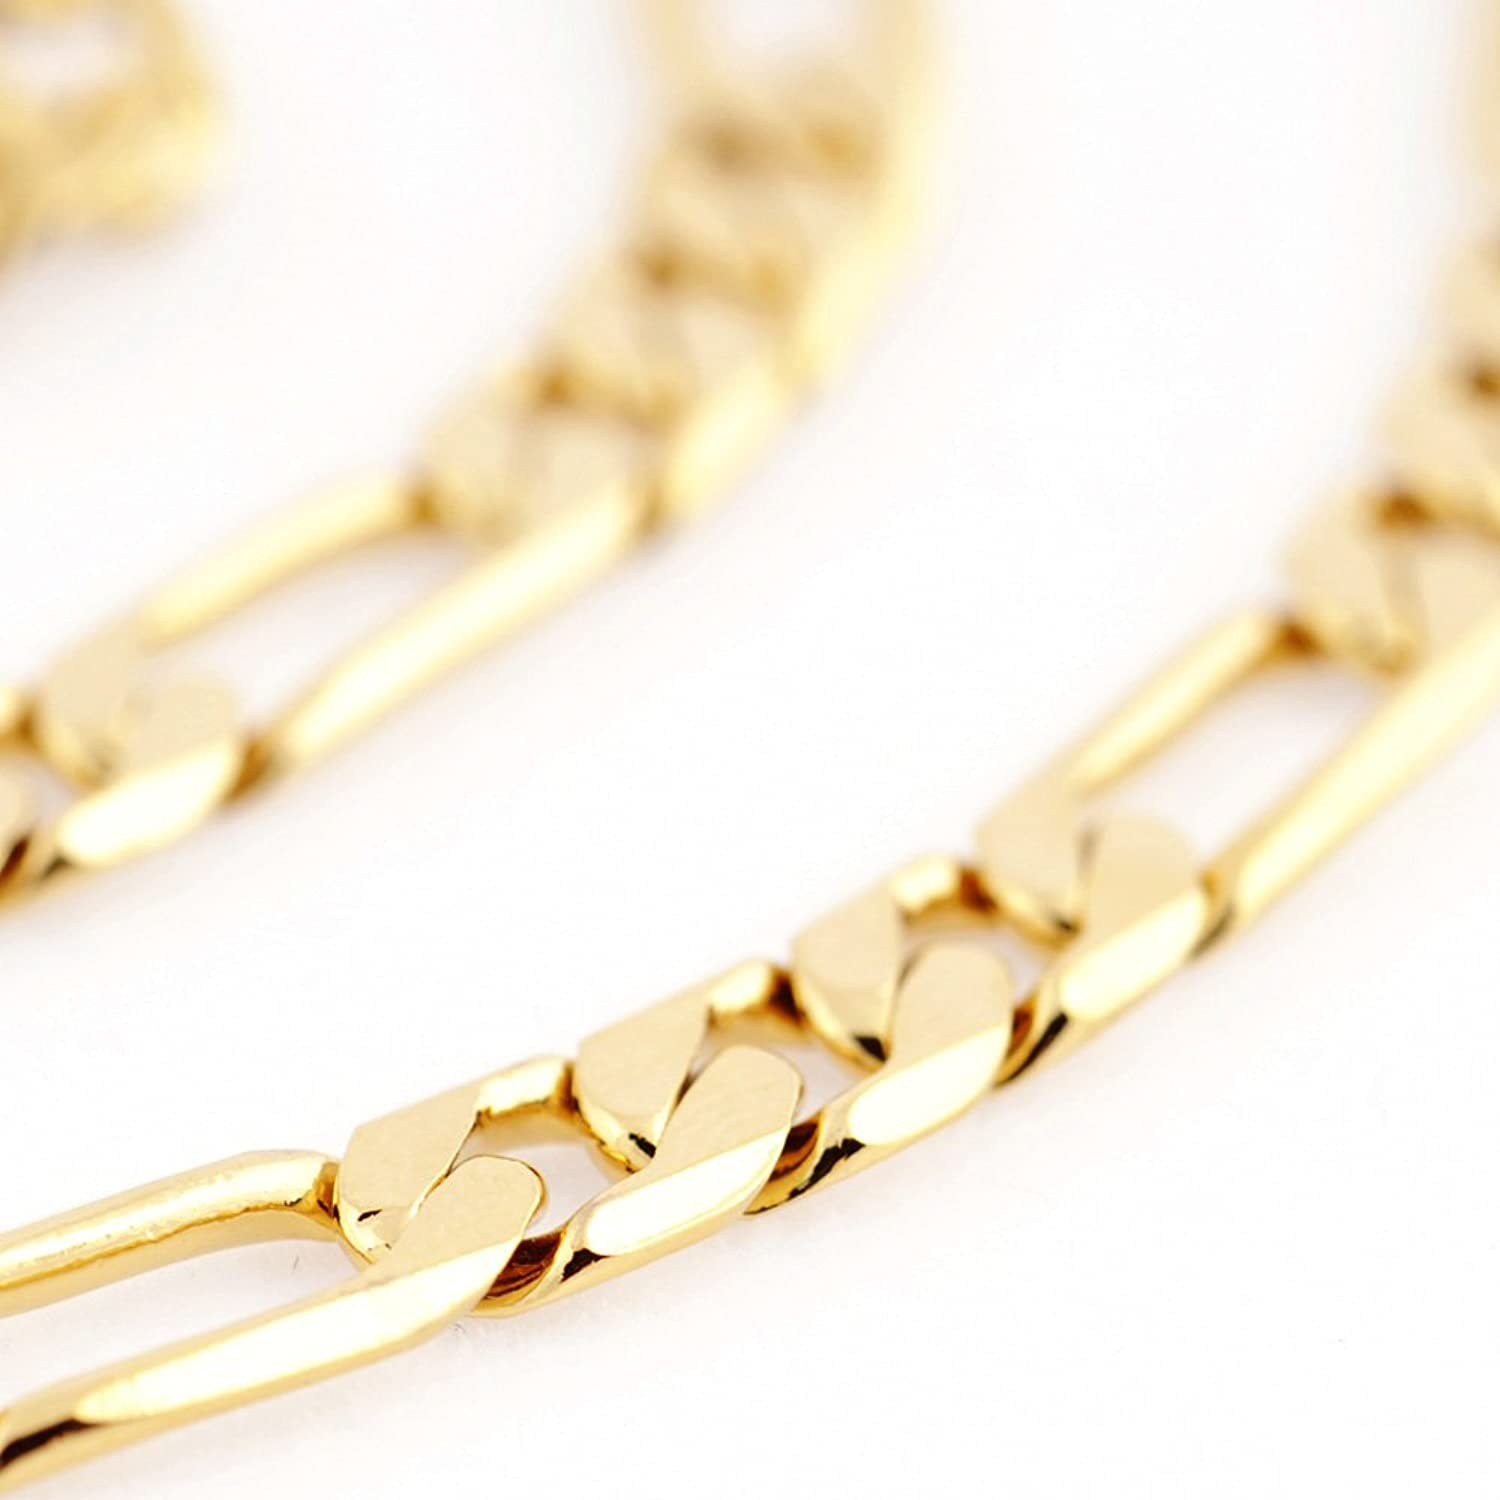 Followmoon Cool 18K Gold Plated Figaro Link Necklace Chain 18